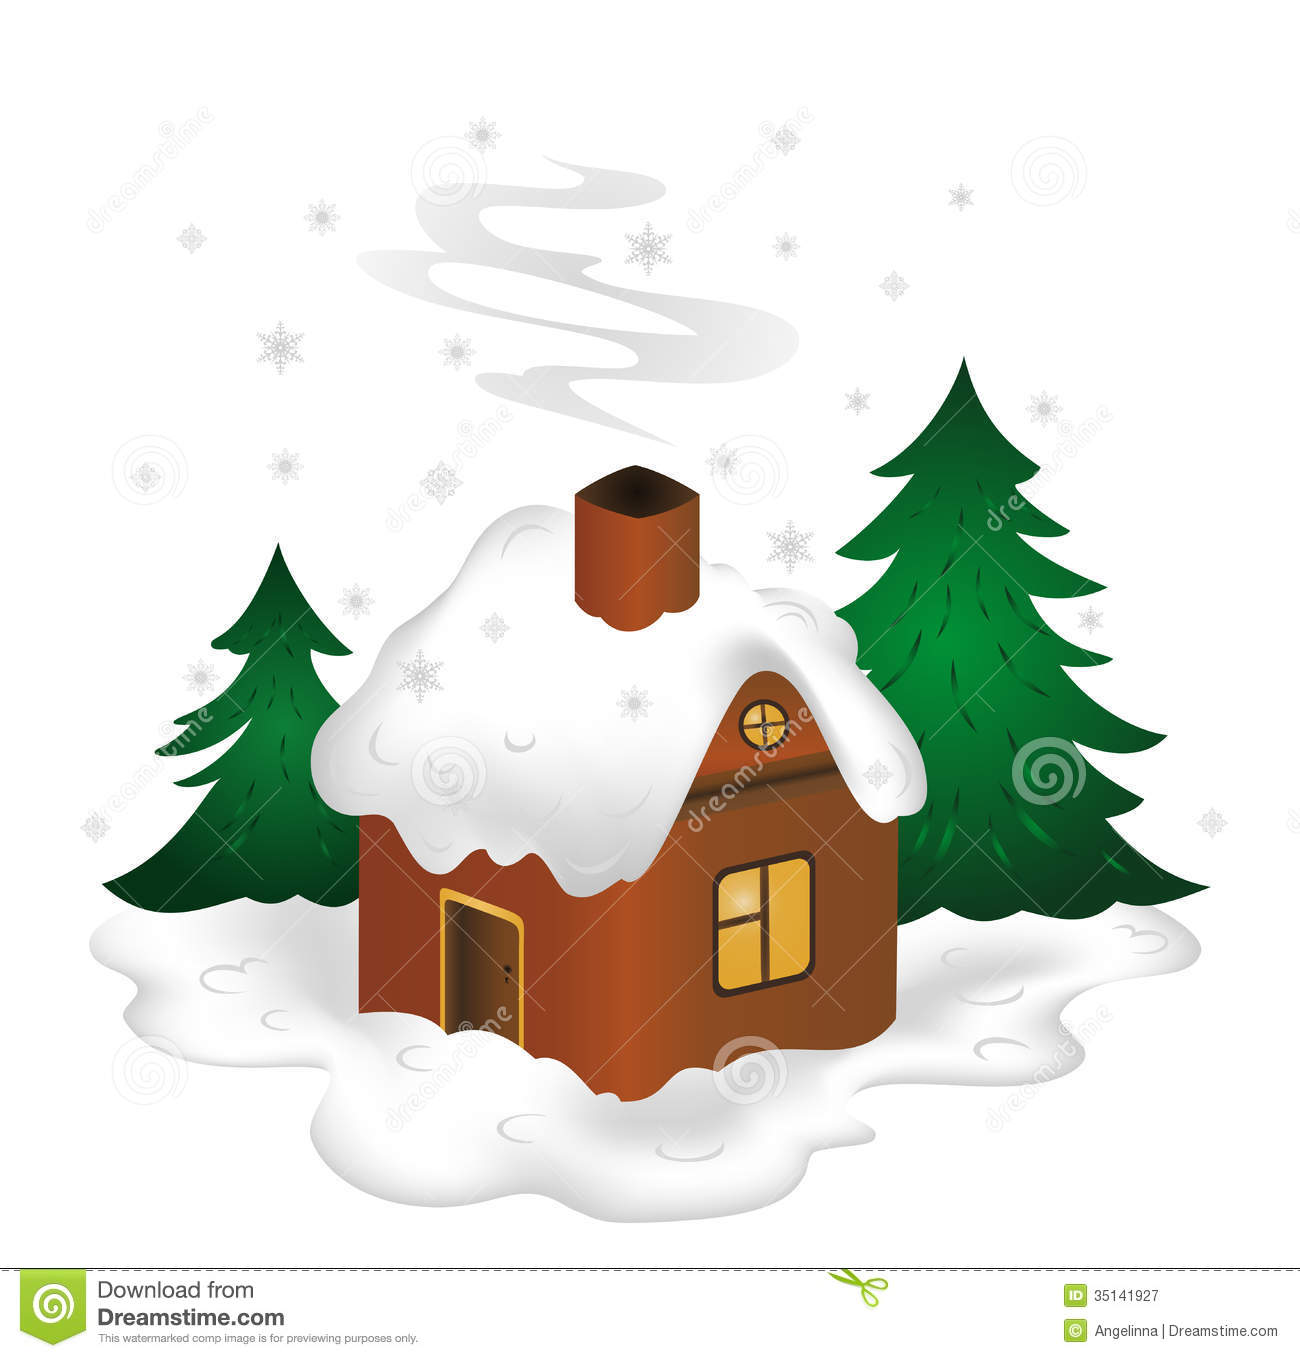 https://thumbs.dreamstime.com/z/winter.